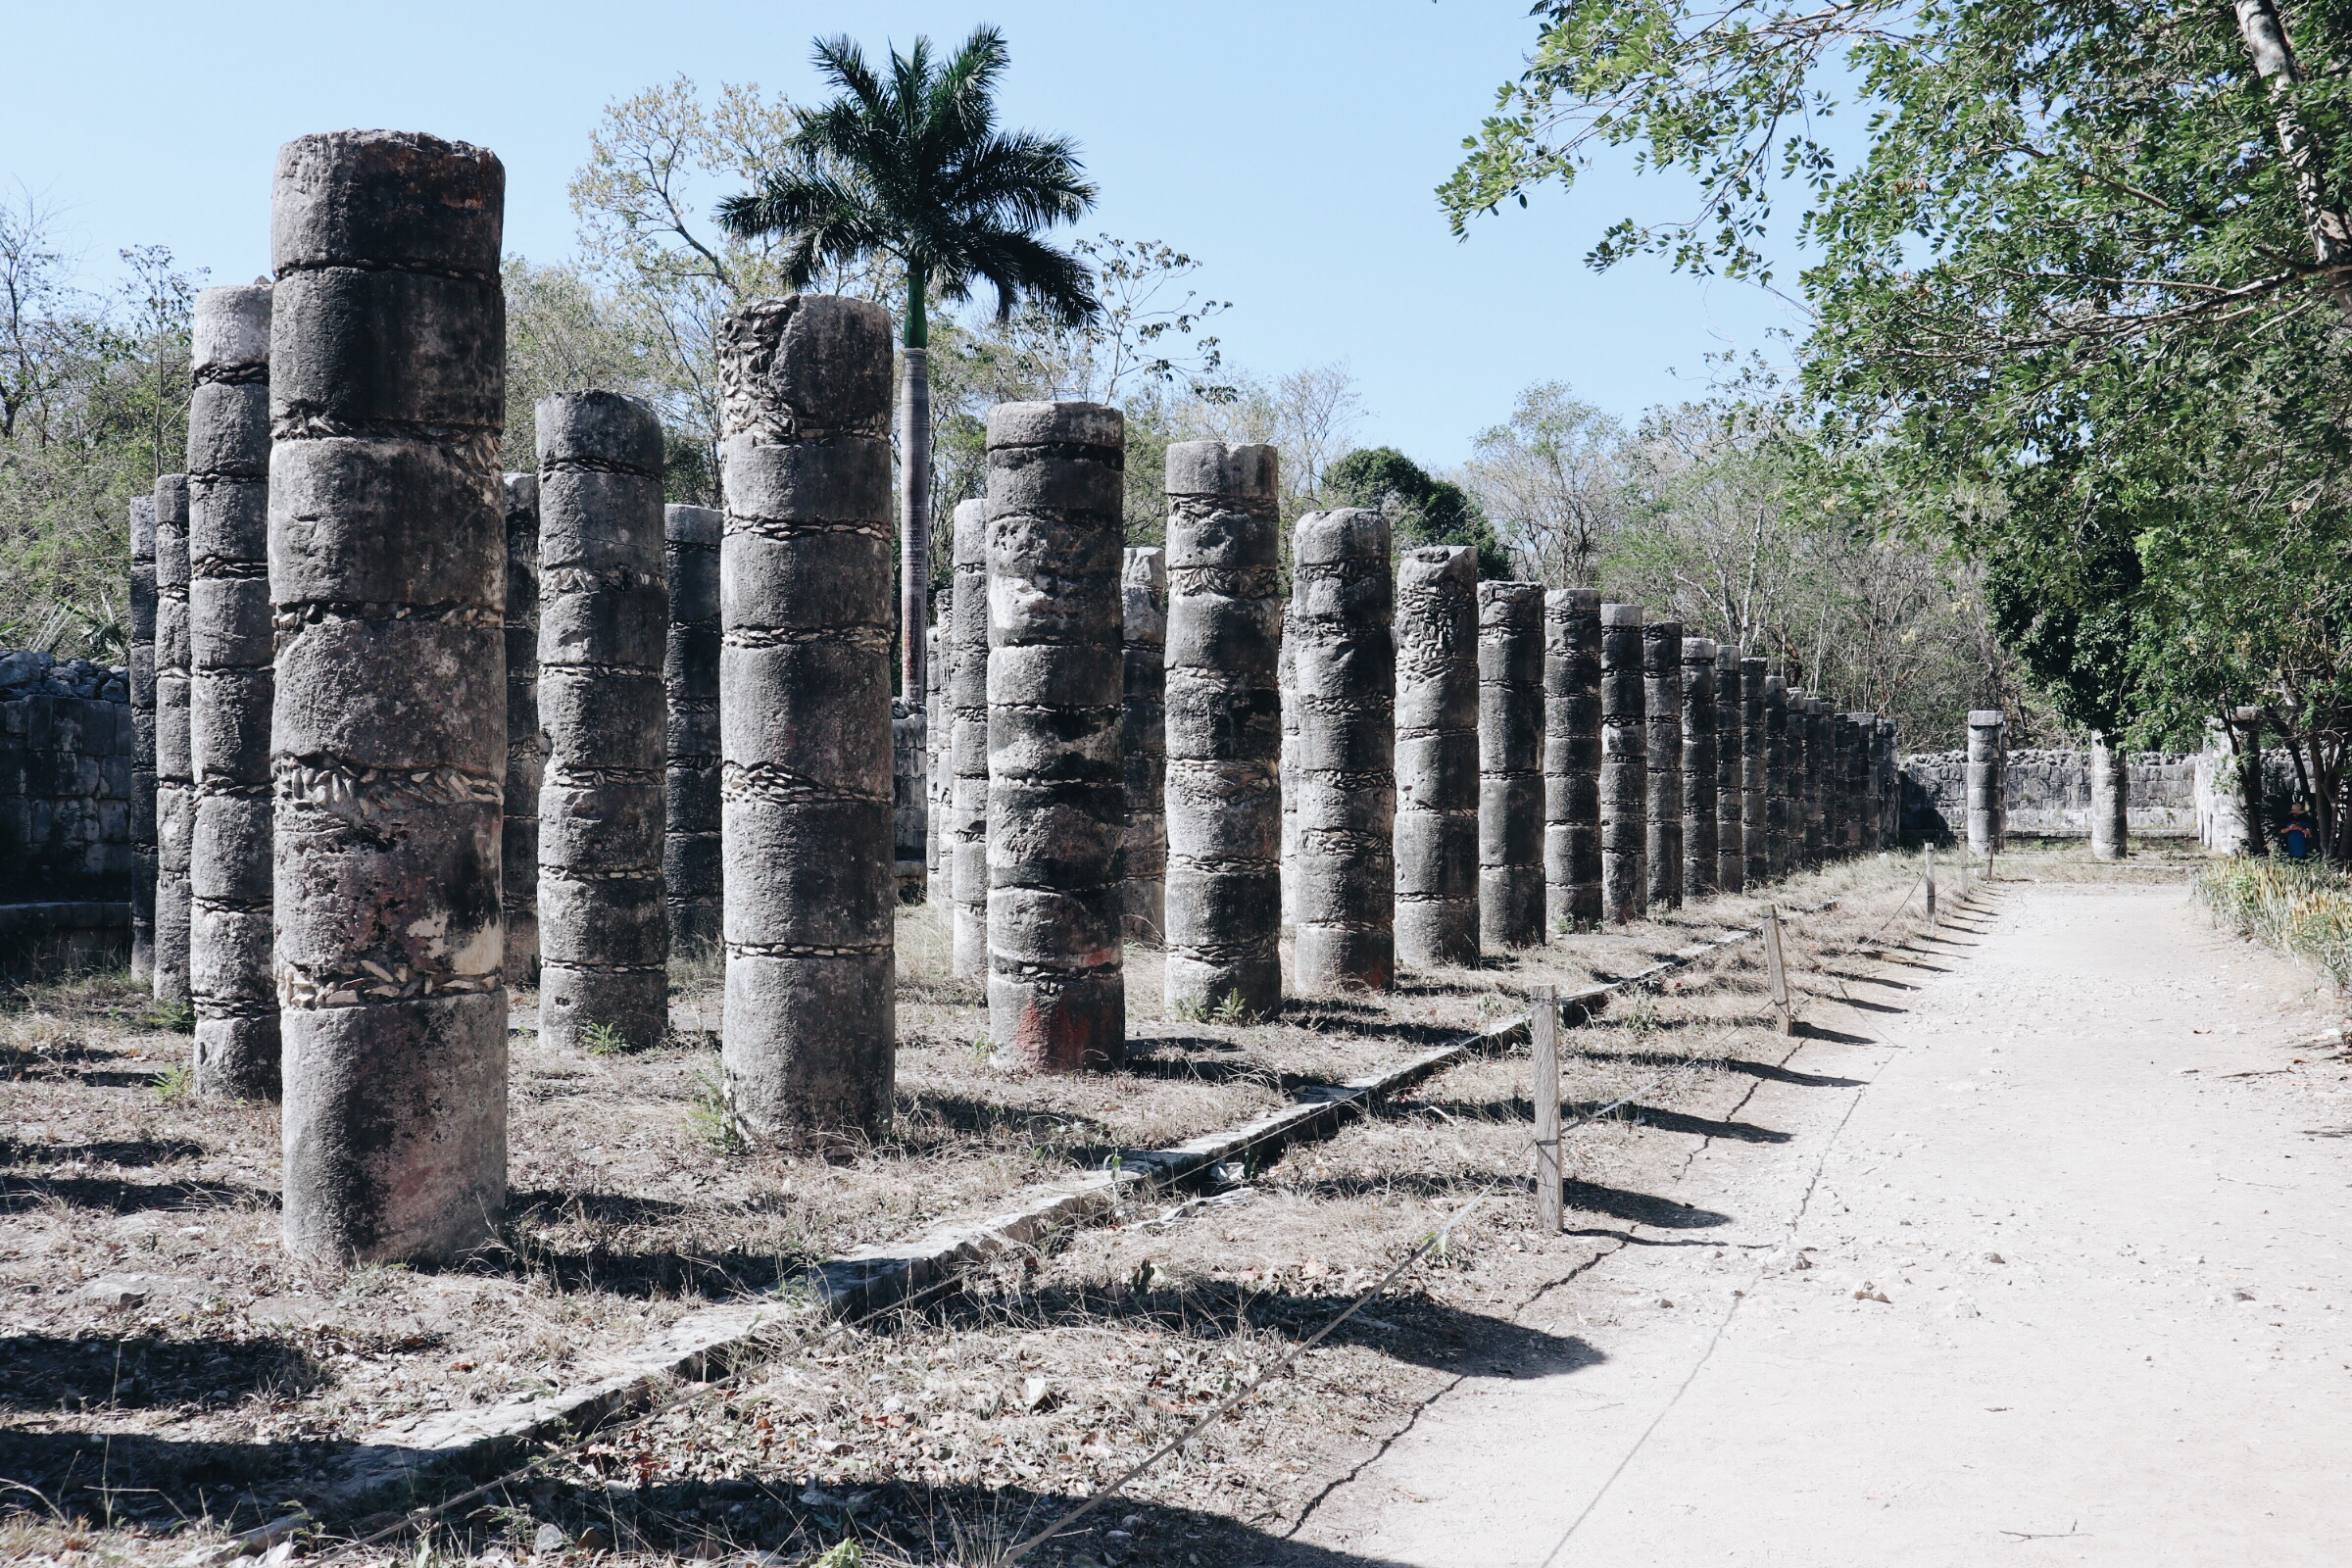 A getaway to Tulum, Mexico, included a visit to Chichen Itza. I was fascinated by the perfection of these columns.